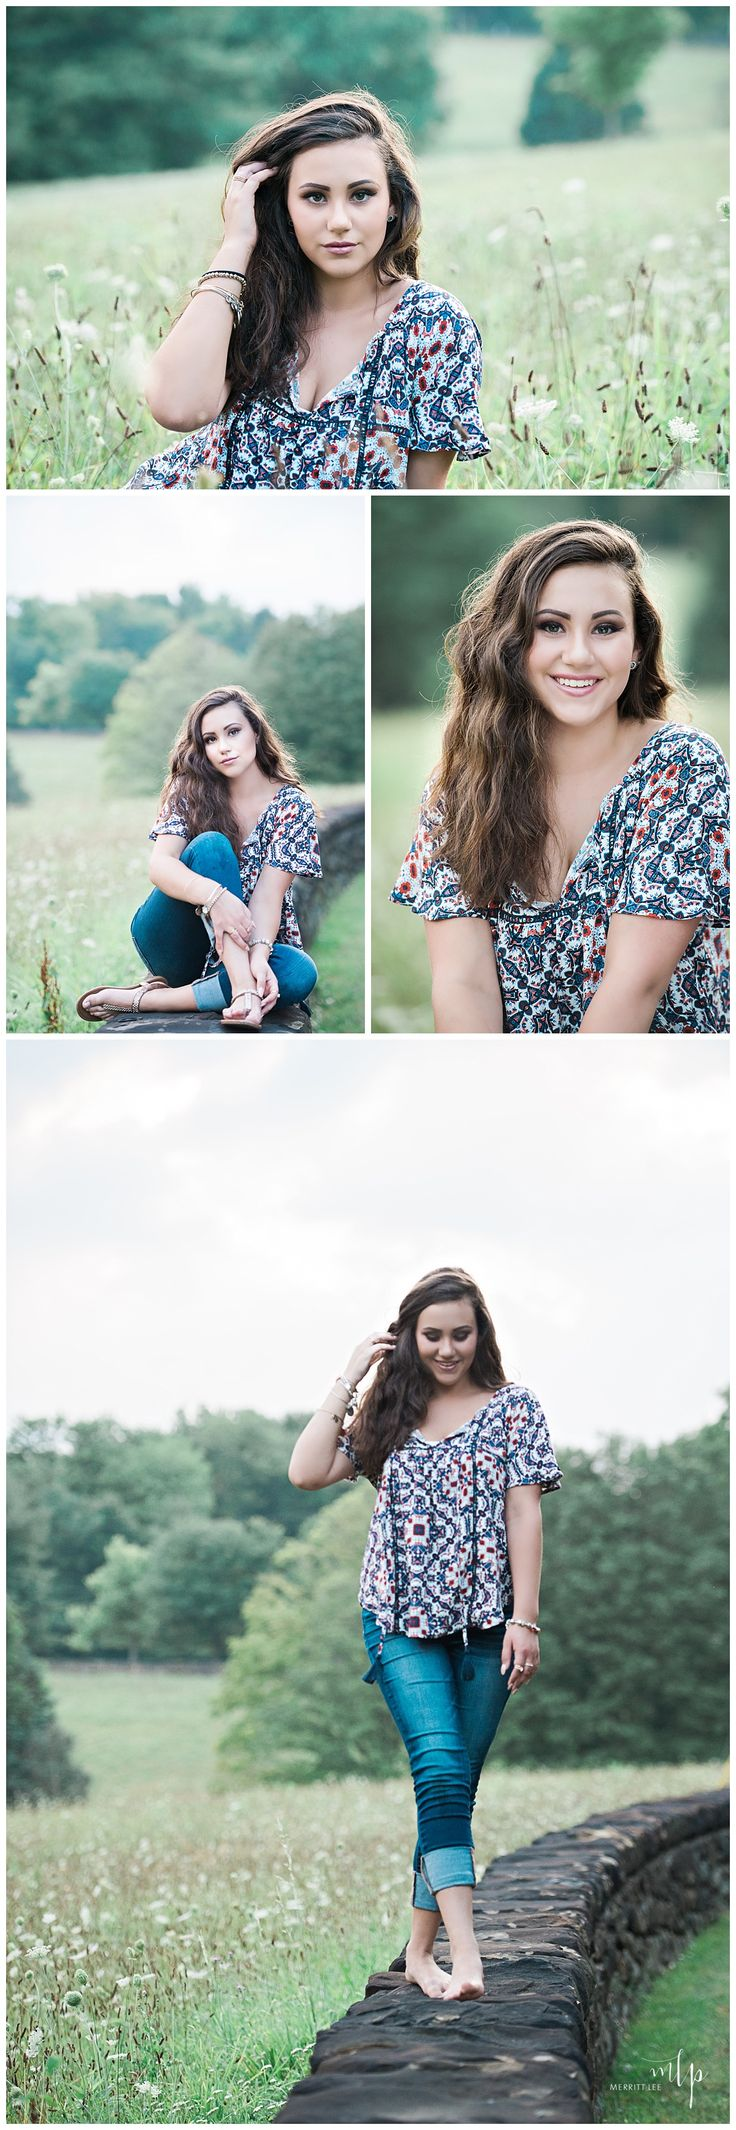 Outdoor Senior Pic Idea! Styled shoot - Hairstyle - Loose Curls - Makeup - Fashion - Natural - Loose Curls - Unique Senior Pictures - Teen Fashion - Senior Inspo - Trendy - Senior Girl Poses - Sewickley Senior Pictures - Pittsburgh Senior Pictures - By Merritt Lee Photography